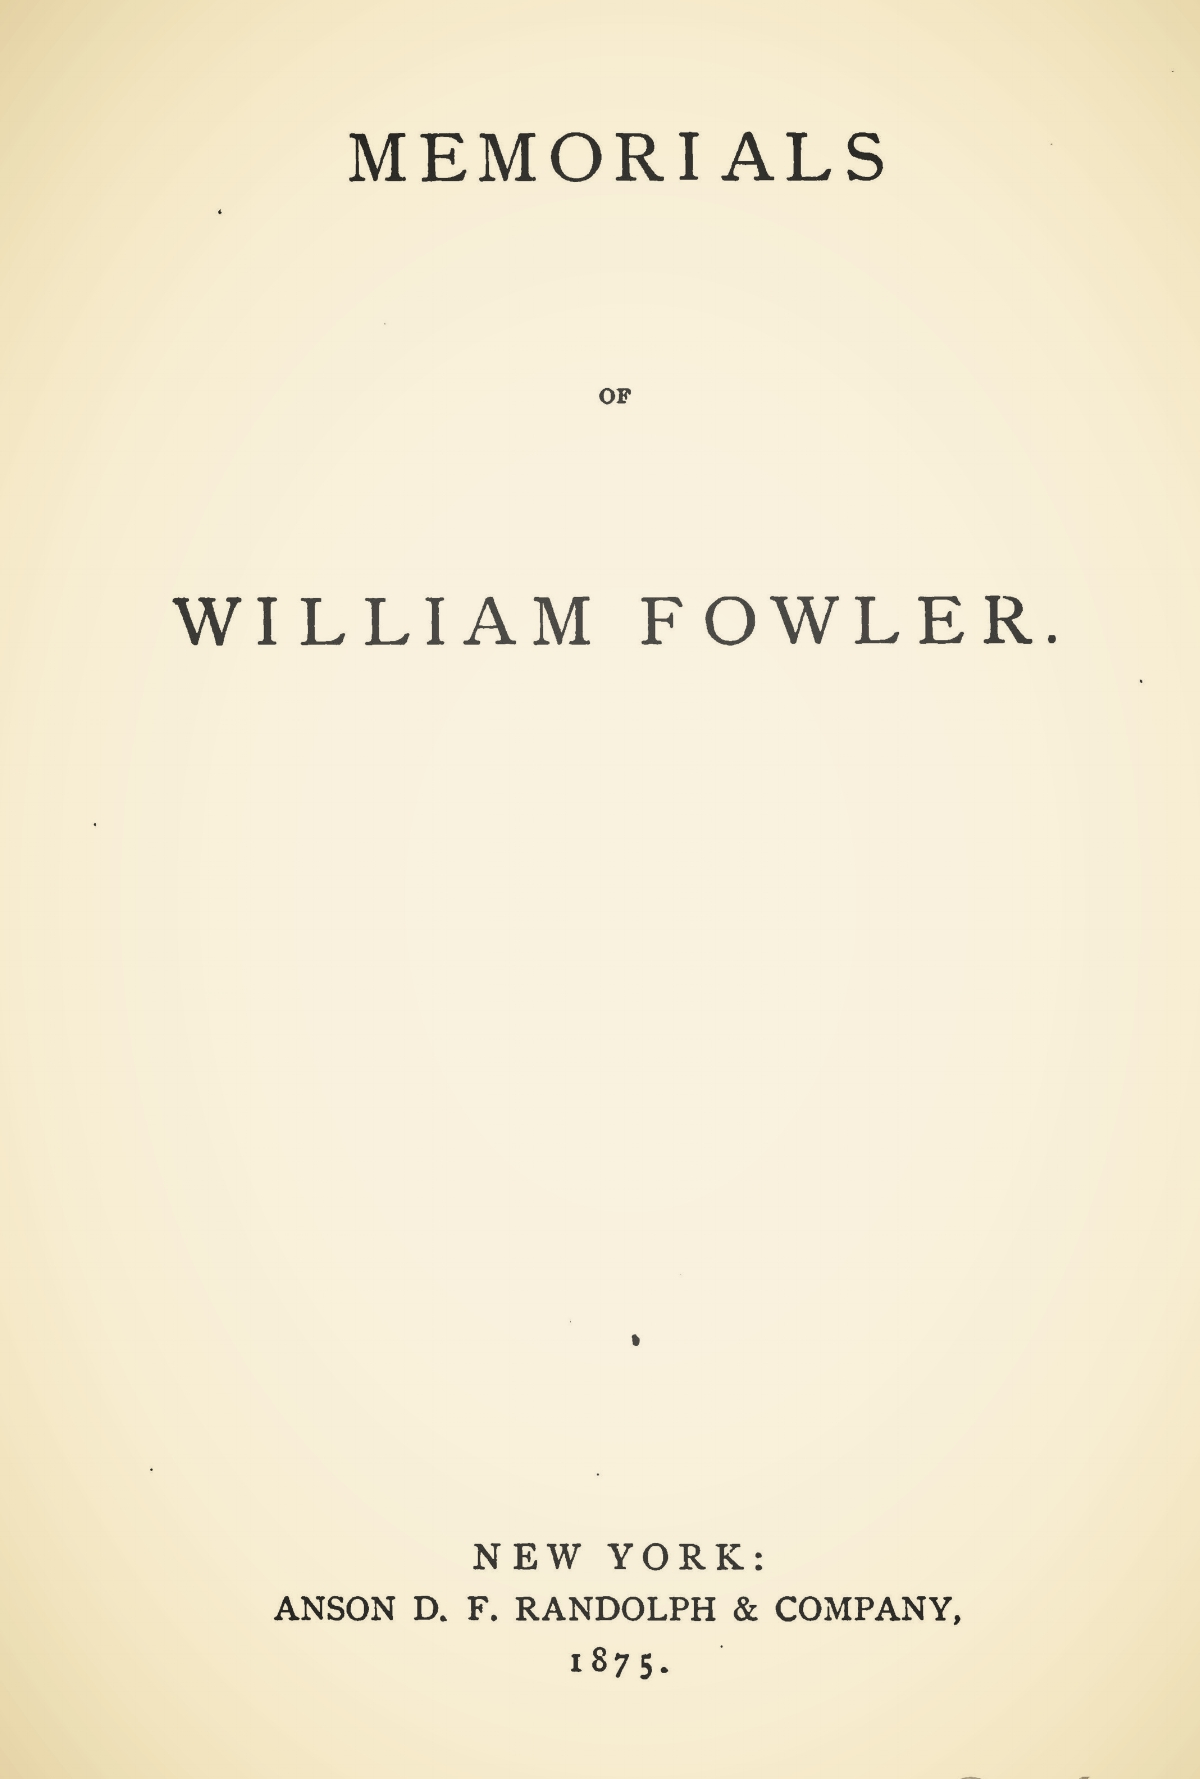 Fowler, Philemon Halsted, Memorials of William Fowler Title Page.jpg